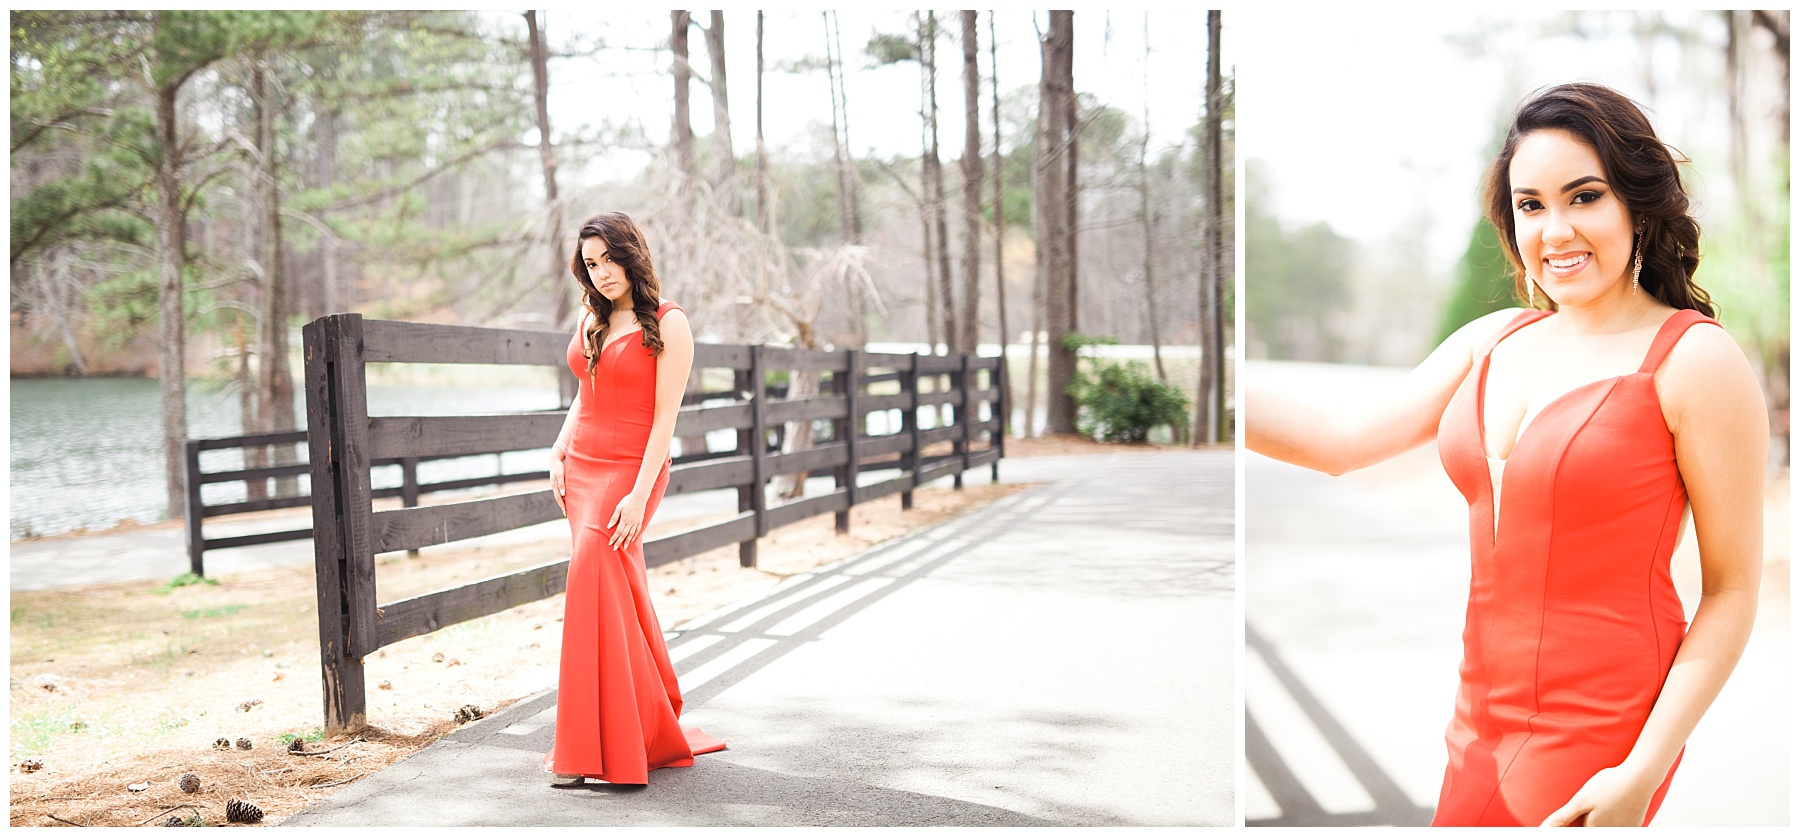 girl atlanta prom dress red outdoors